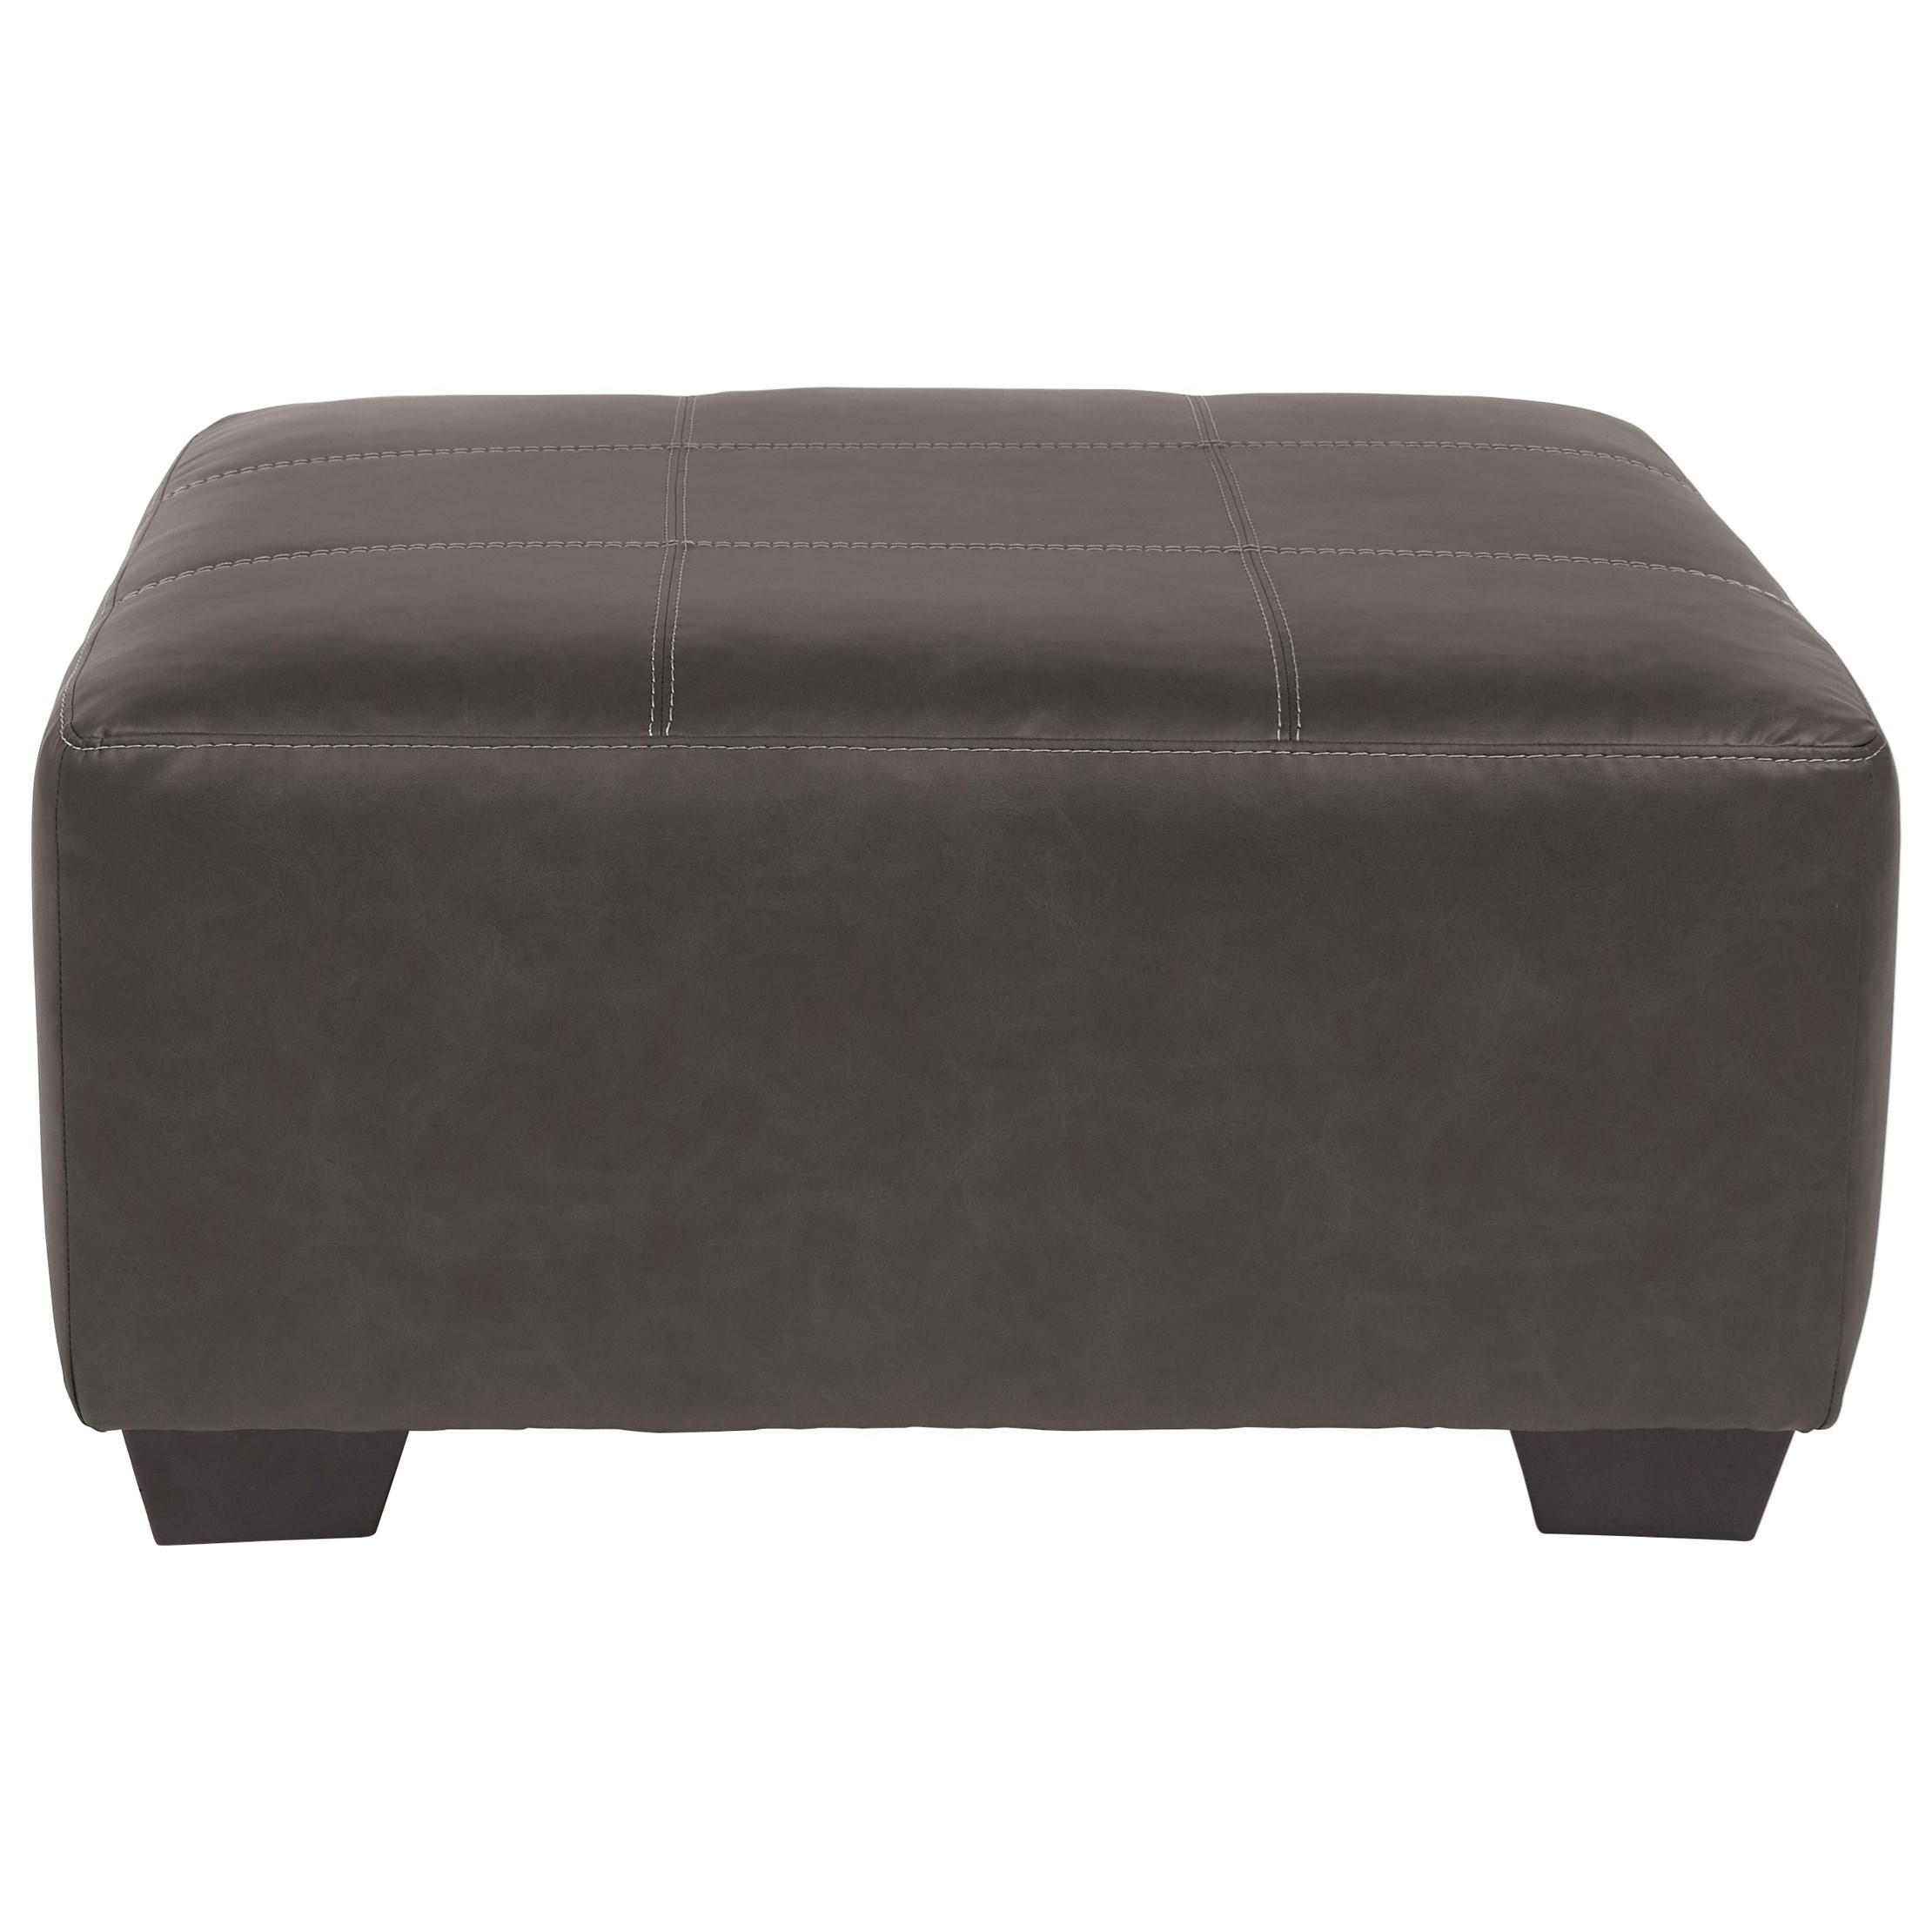 Square Faux Leather Oversized Accent Ottoman